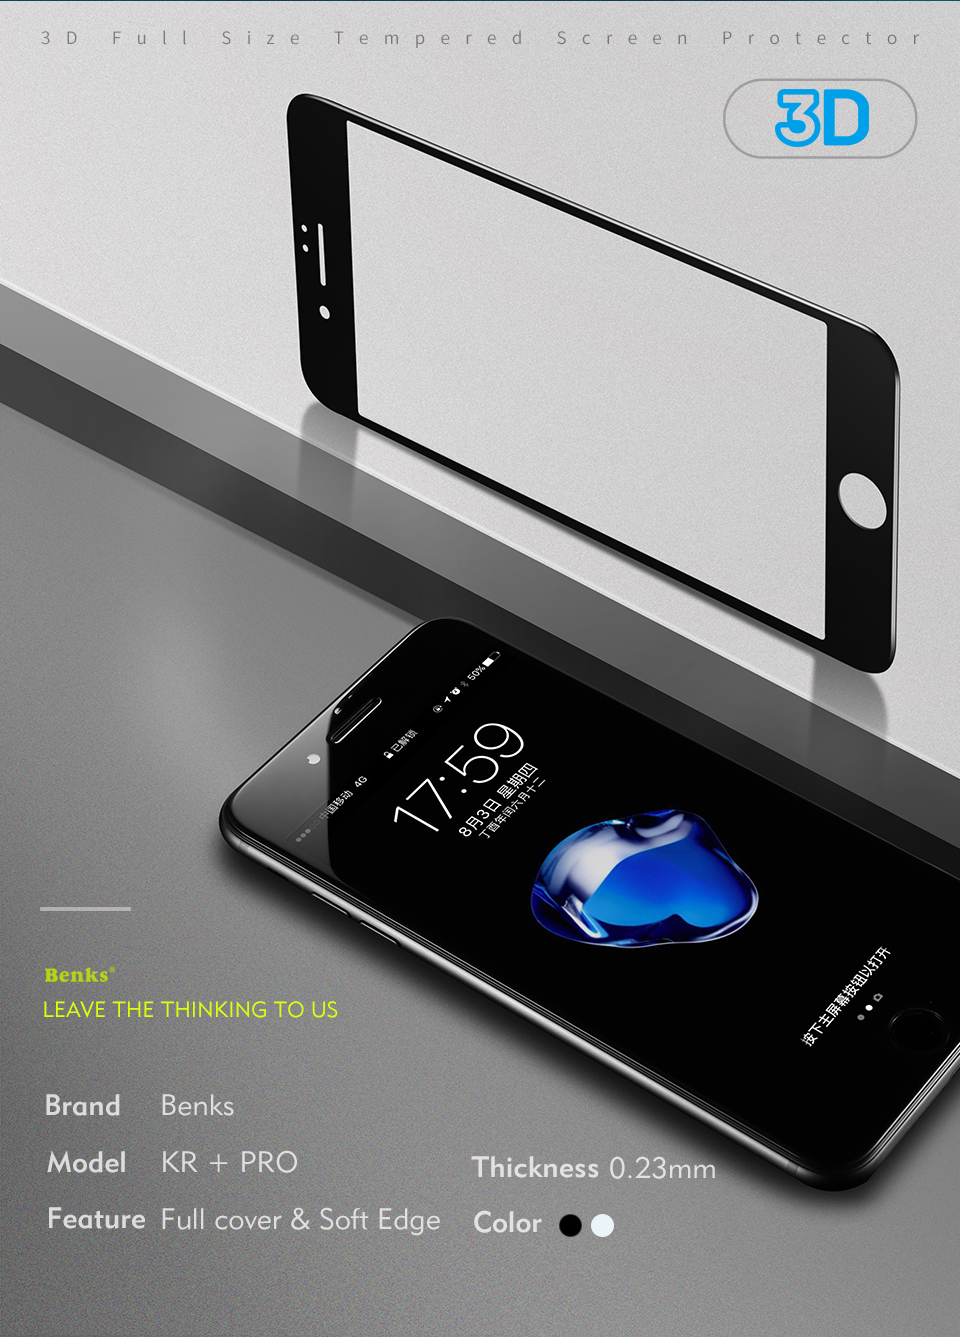 Benks 3d Curved Tempered Glass Screen Protector For Iphone 8 7 6s Plus Clear Full Cover Premium Pro Phone Celular Protection Film 7plus